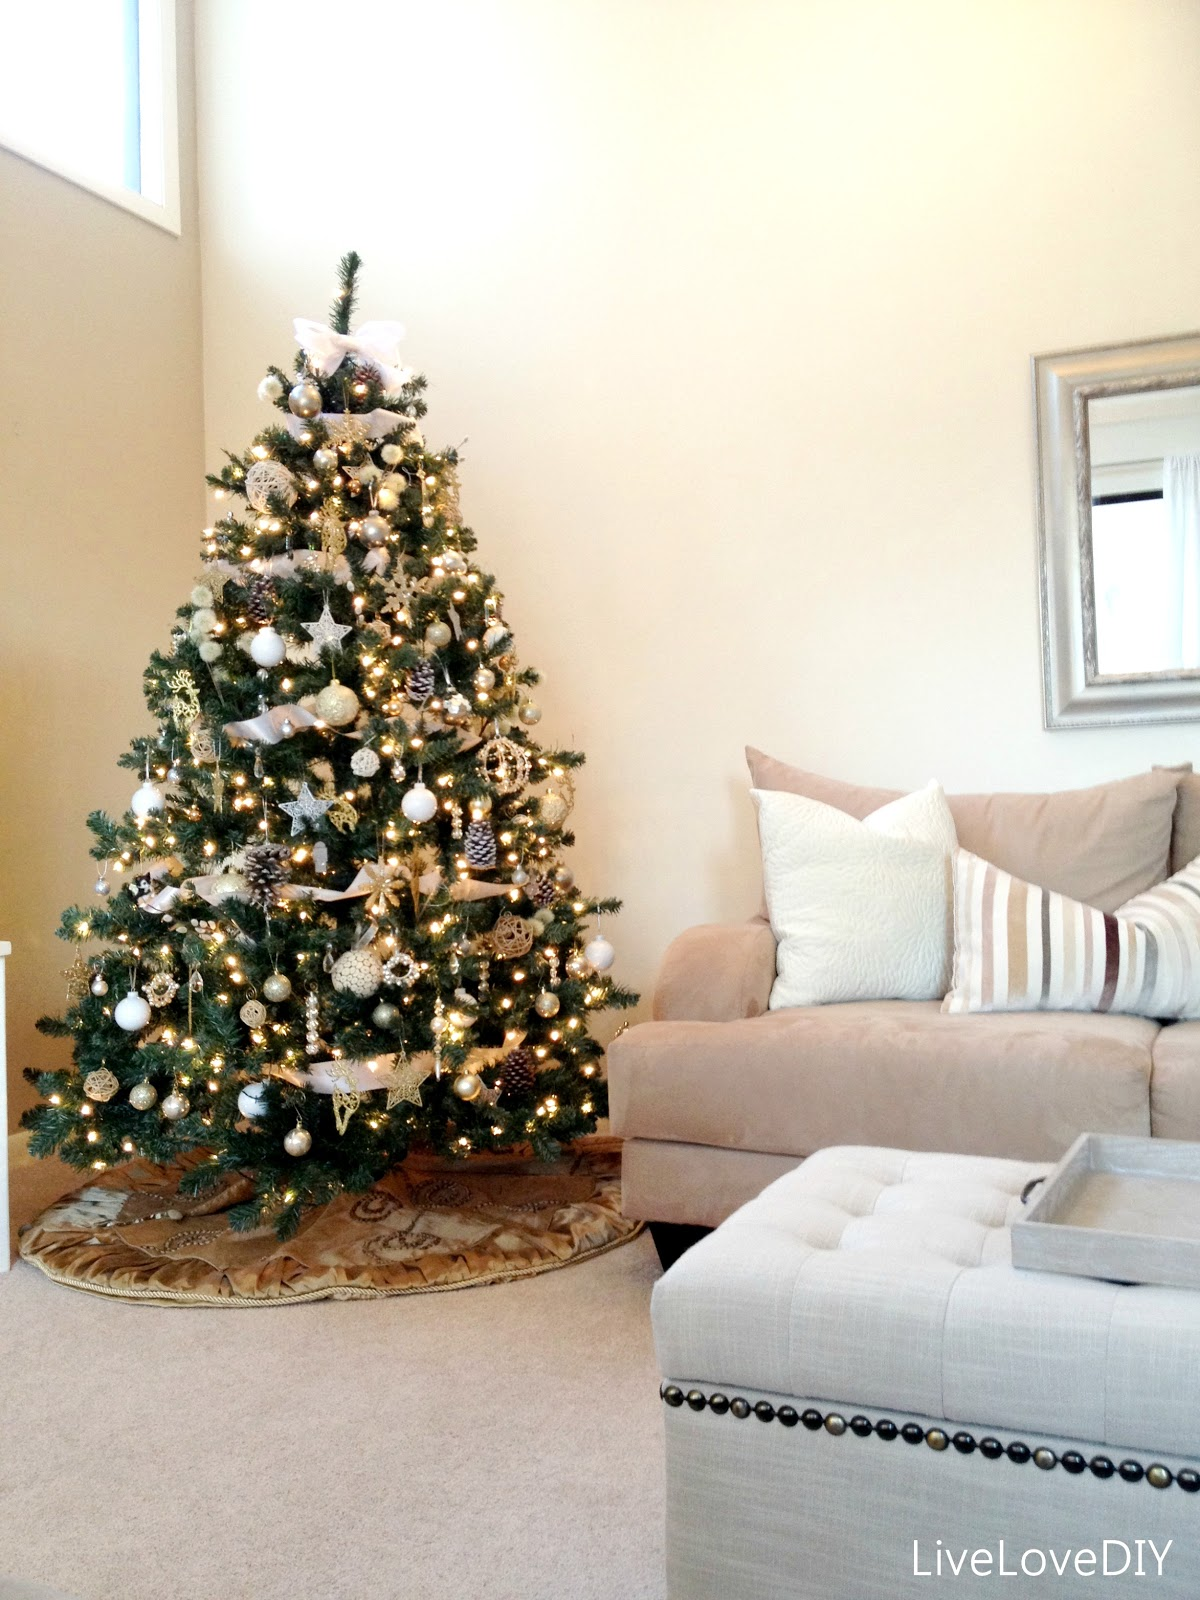 LiveLoveDIY: DIY Christmas Tree Decor